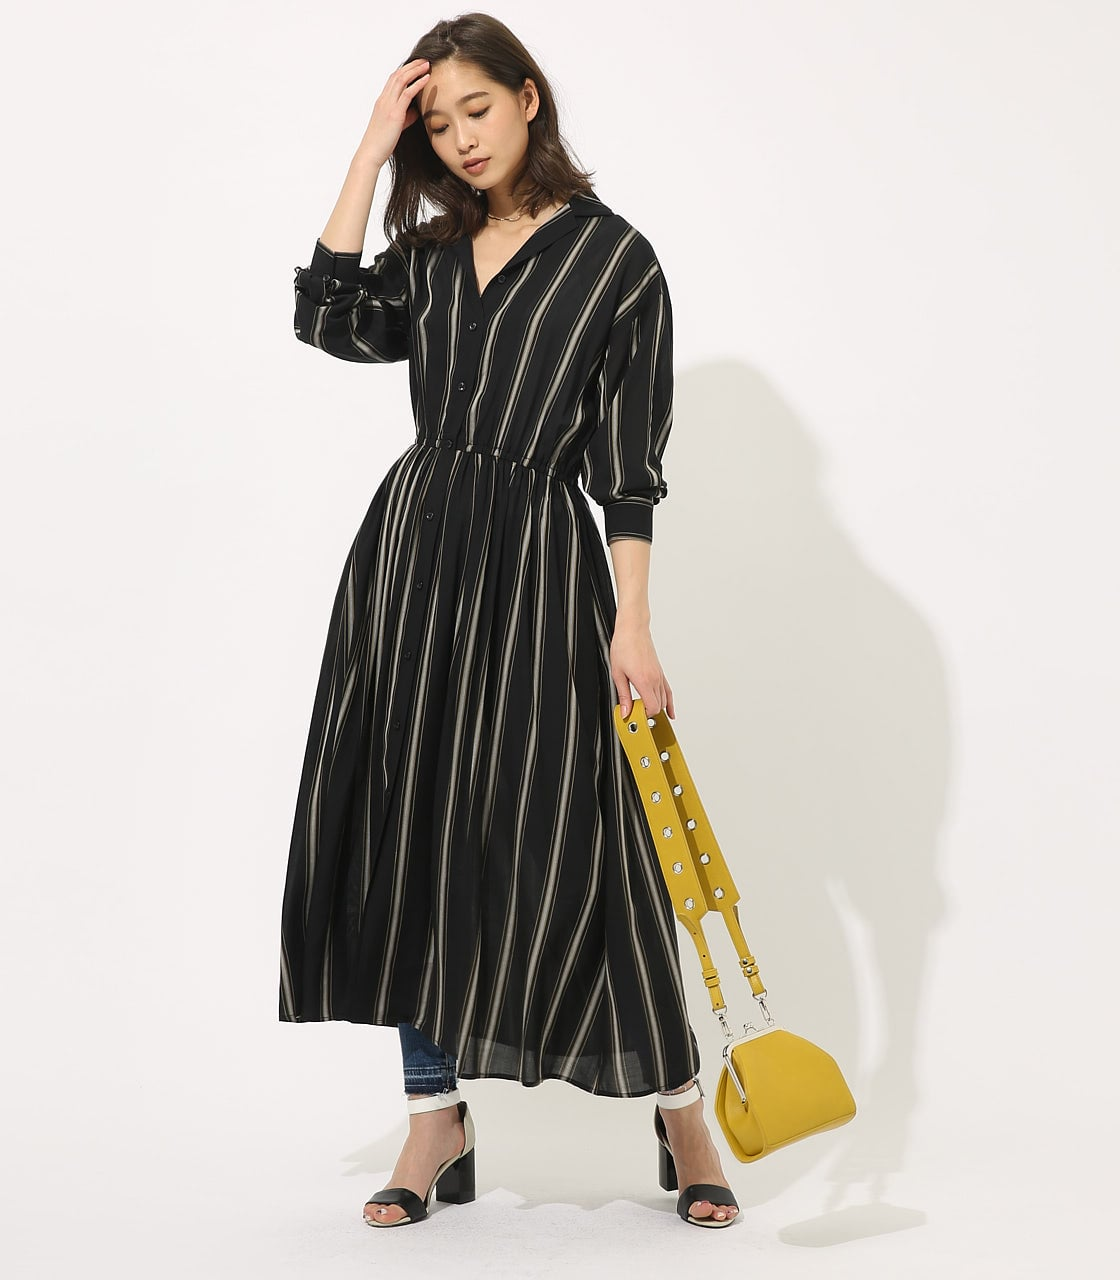 【AZUL BY MOUSSY】BROWSING MAXI ONEPIECE 【MOOK49掲載 90037】 詳細画像 柄BLK 1